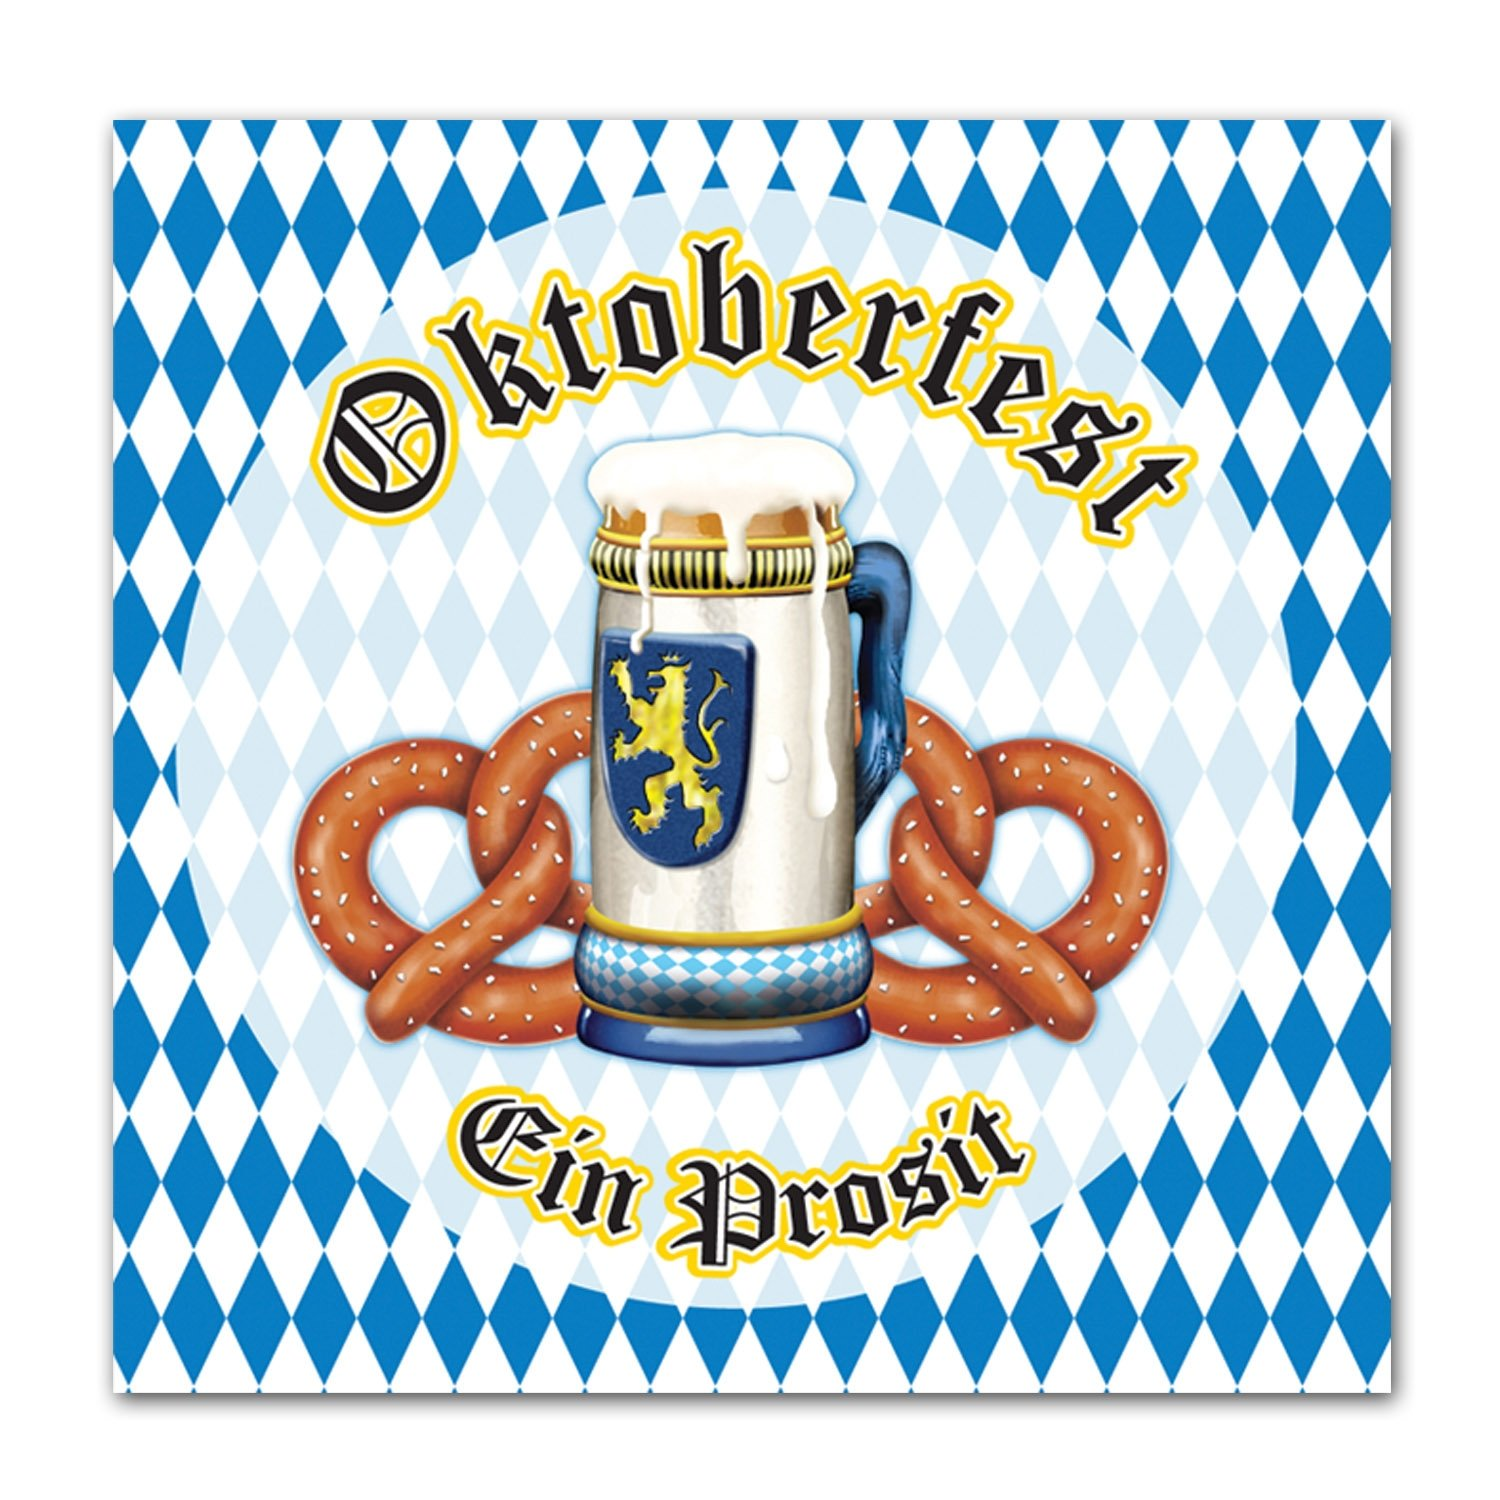 Beistle Oktoberfest Luncheon Napkins (2-Ply) Party Accessory (1 count) (16/Pkg) 58109